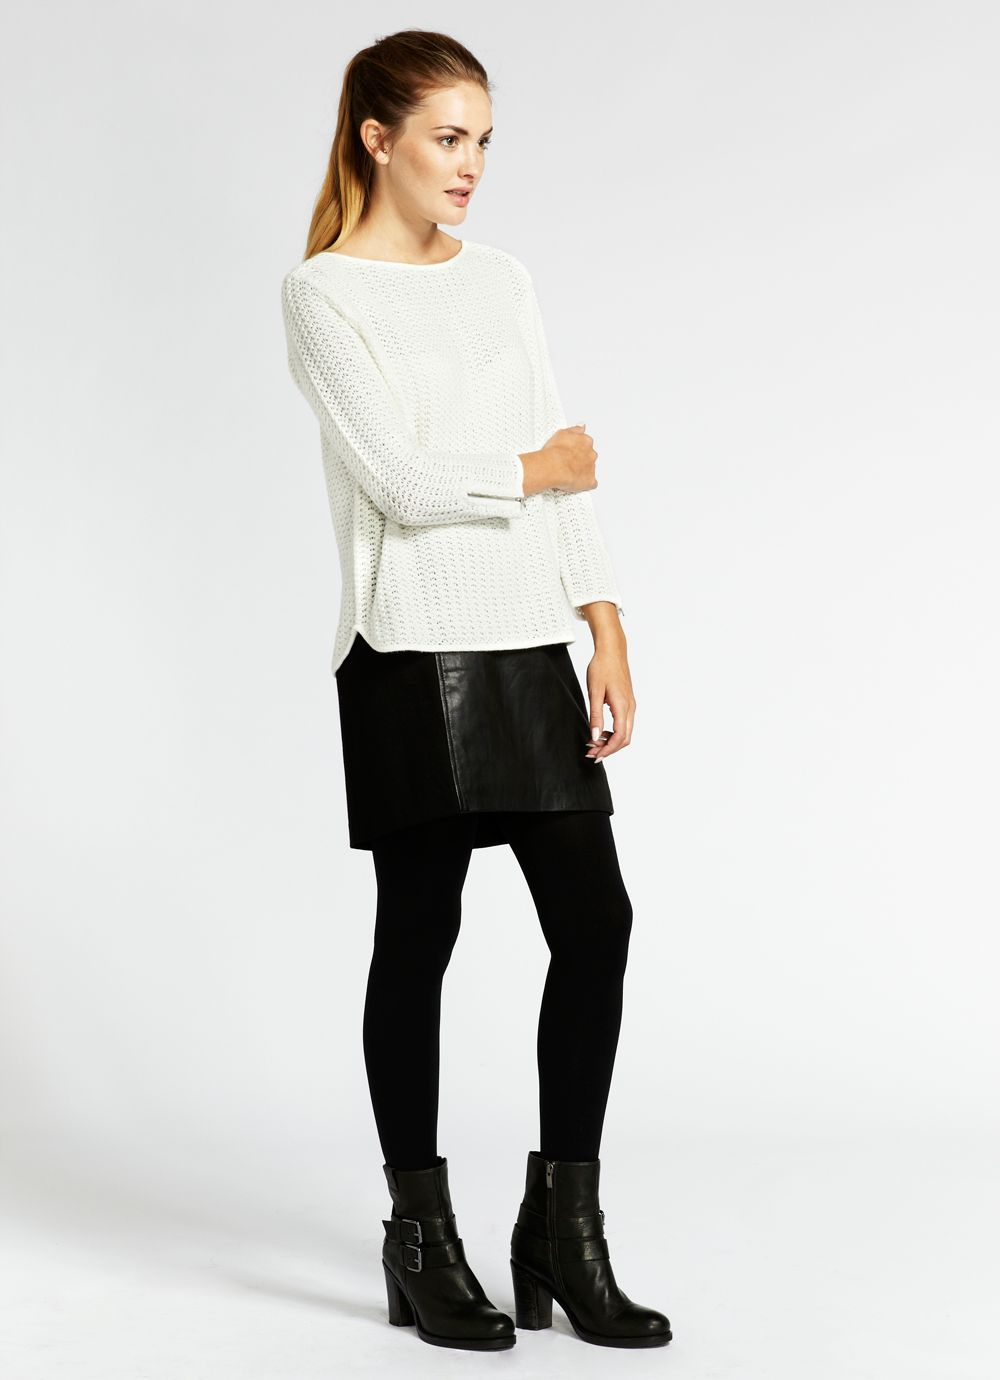 Ivory zip back boxy knit